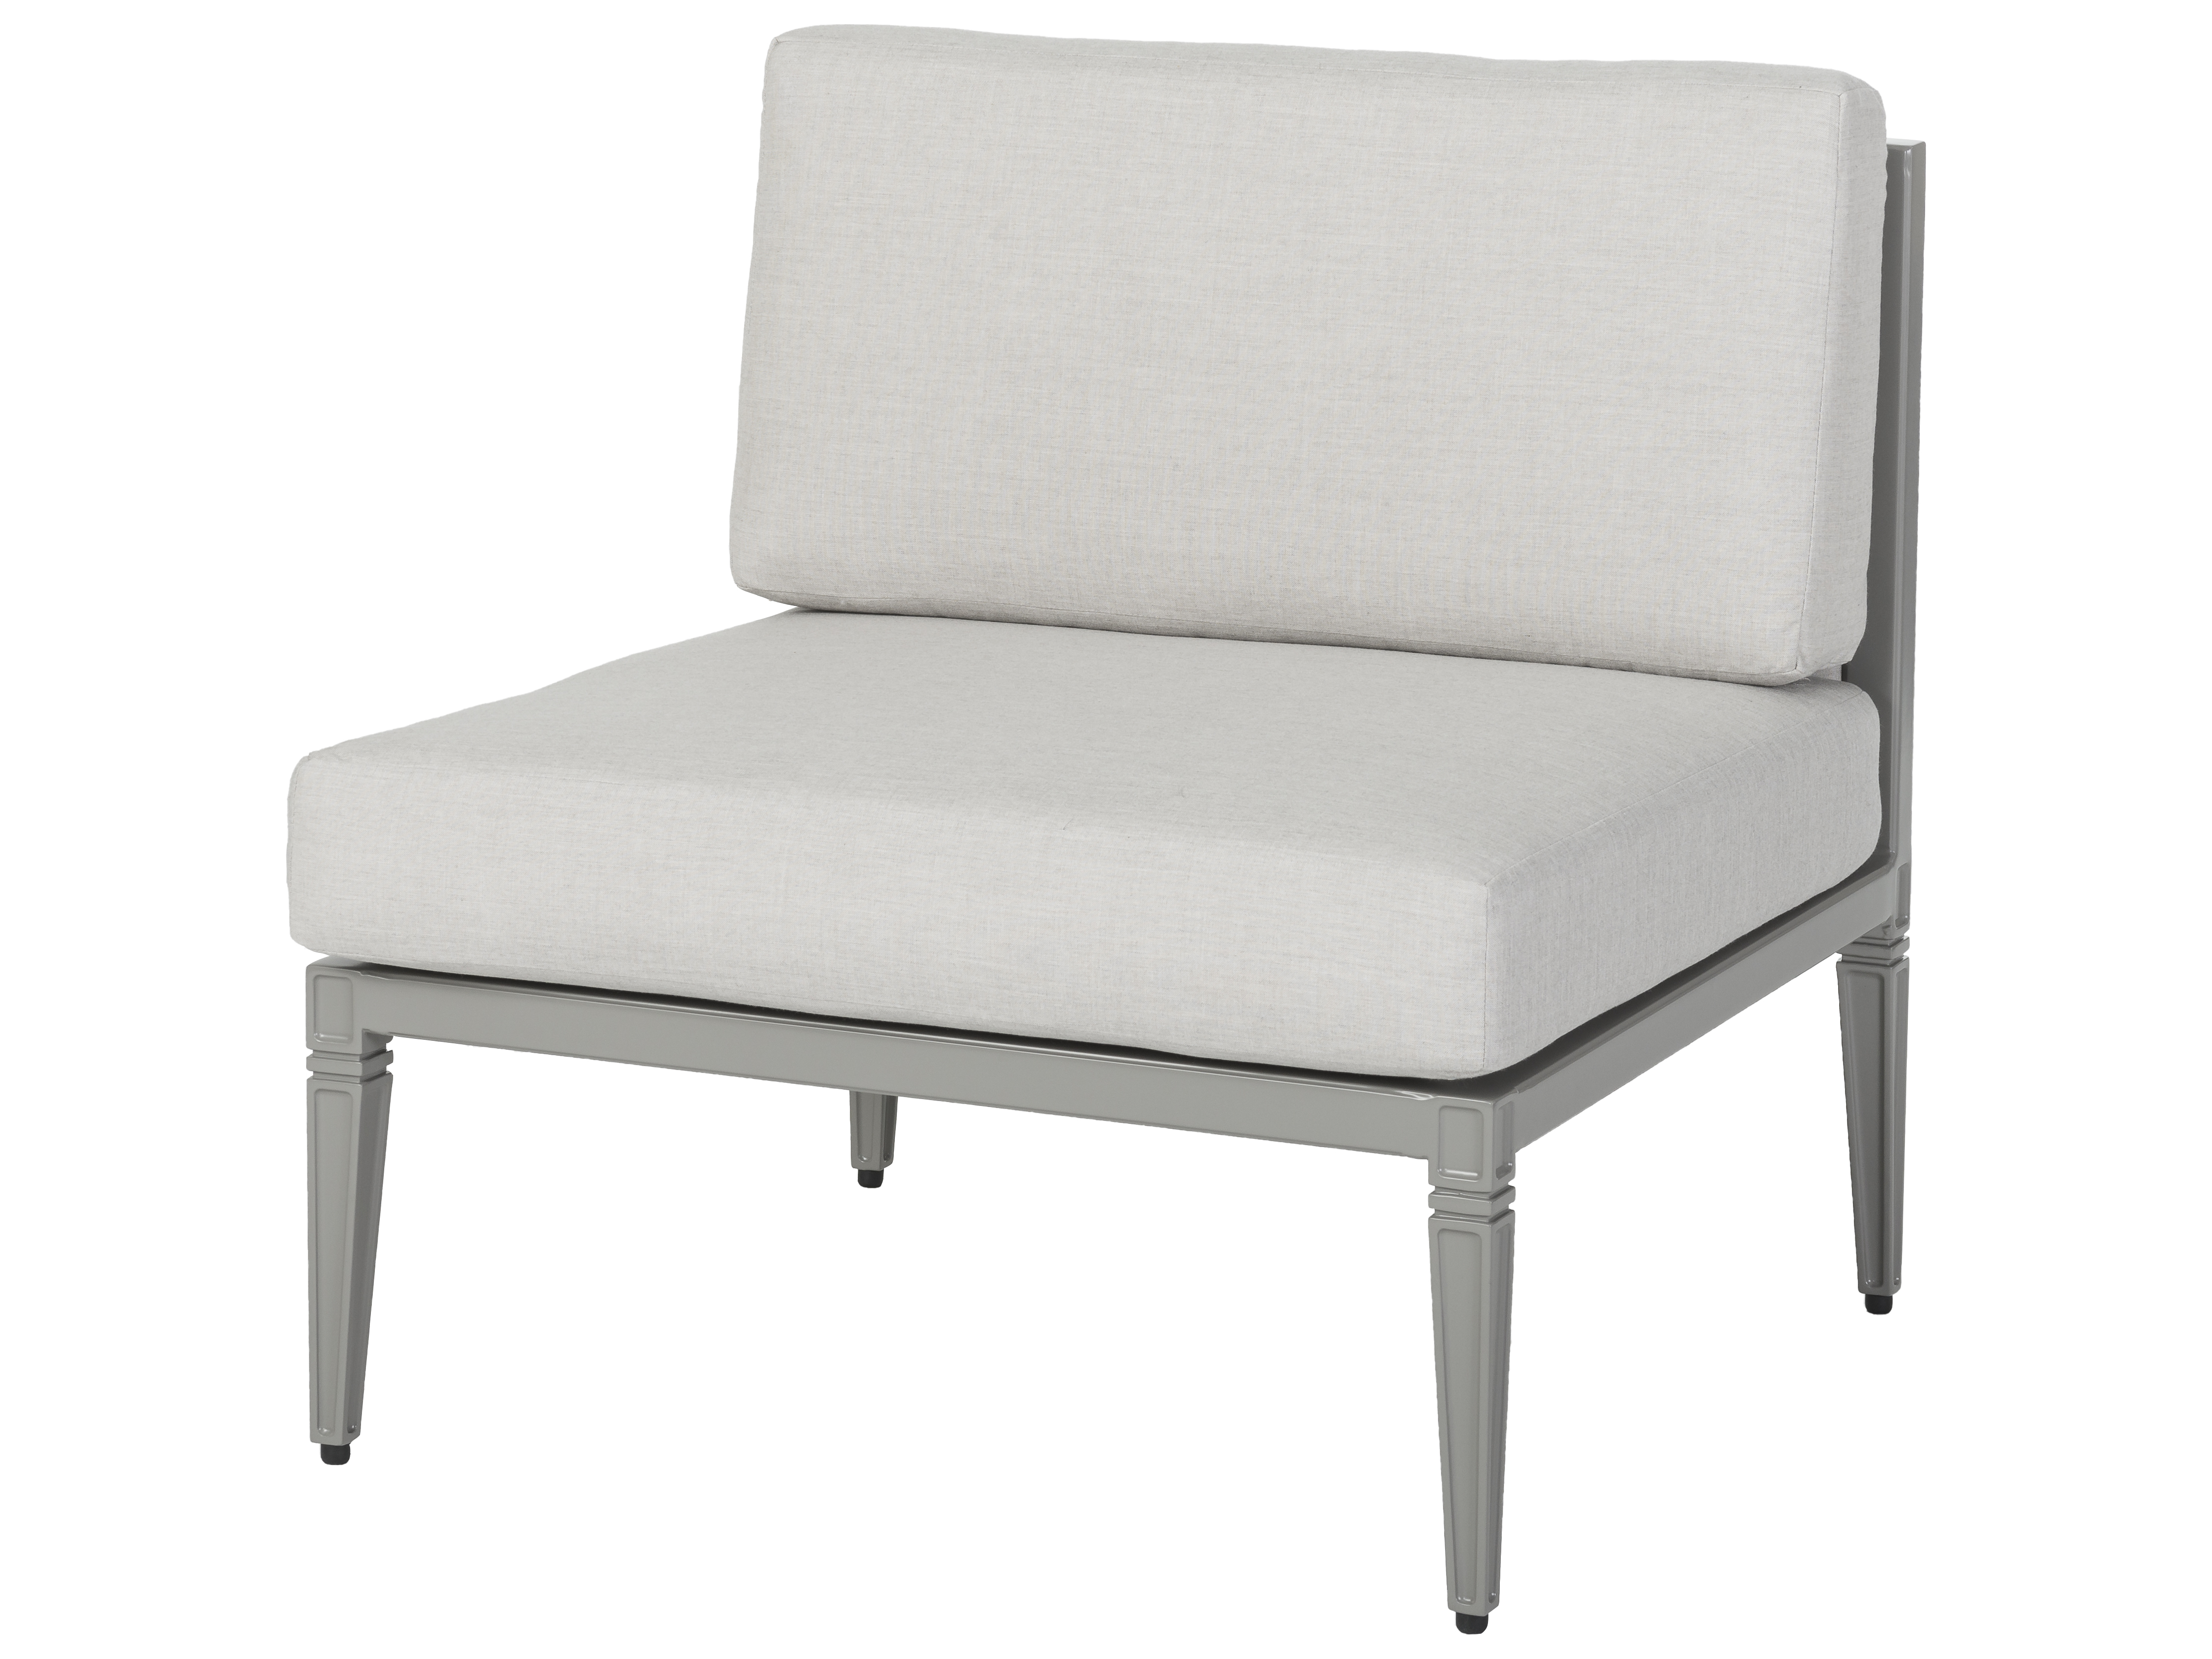 in furniture oknws acceptable provence chair straight com modern back with